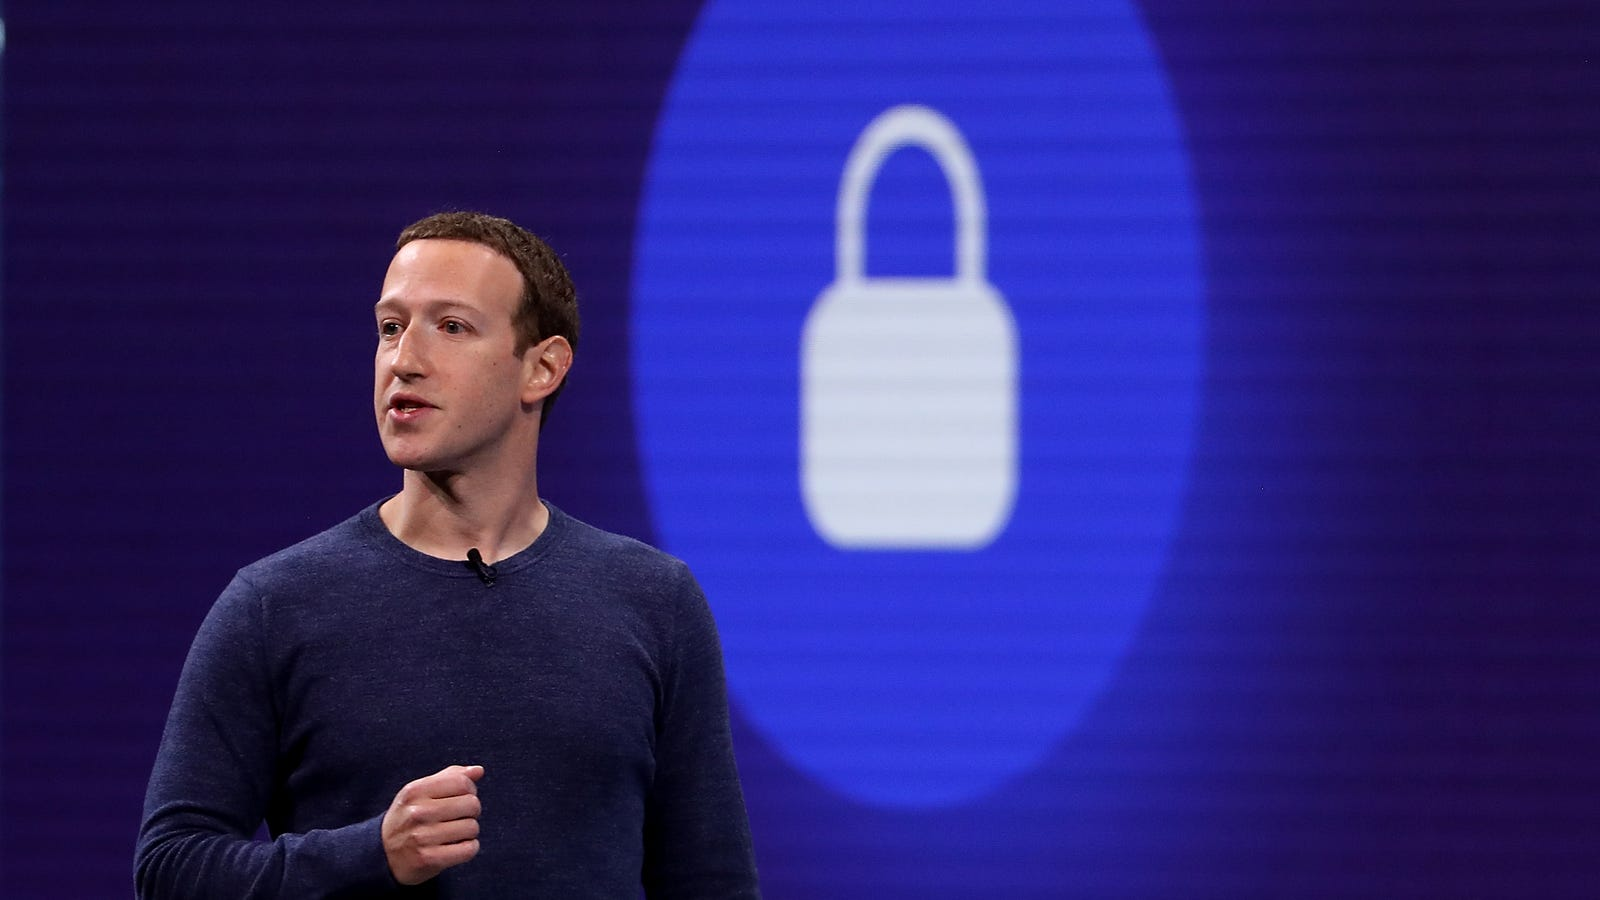 QnA VBage Facebook Stored Hundreds of Millions of Passwords Accessible in Plaintext for Years